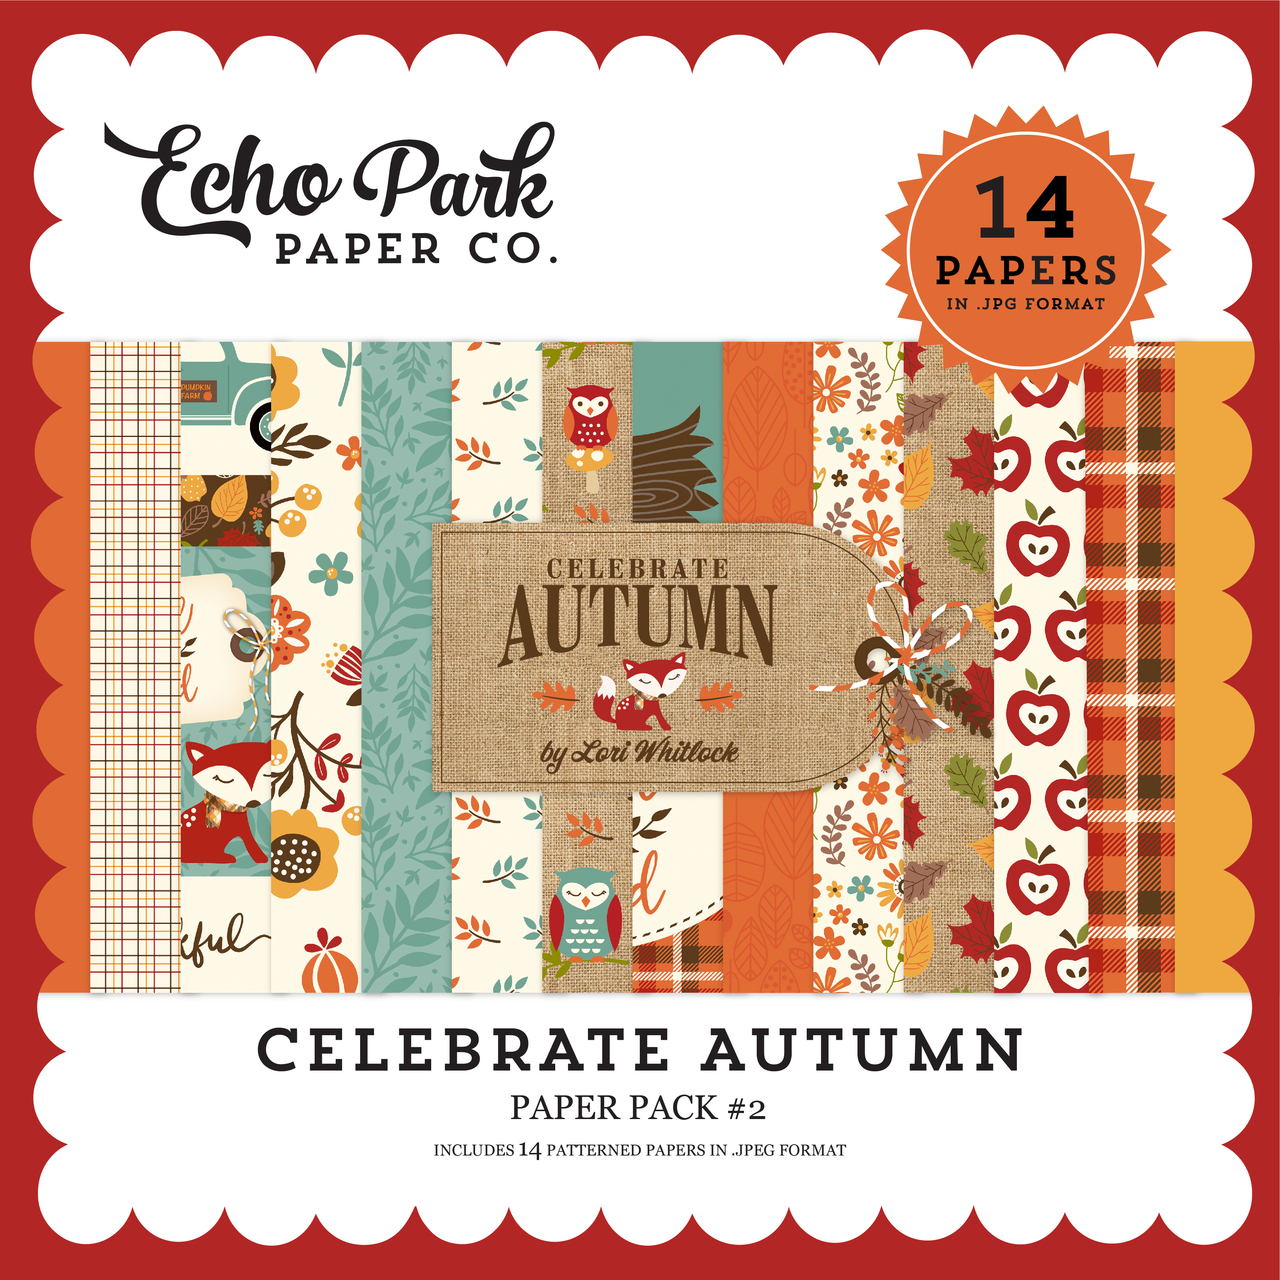 843acd53ea Celebrate Autumn Paper Pack #2 - Snap Click Supply Co.